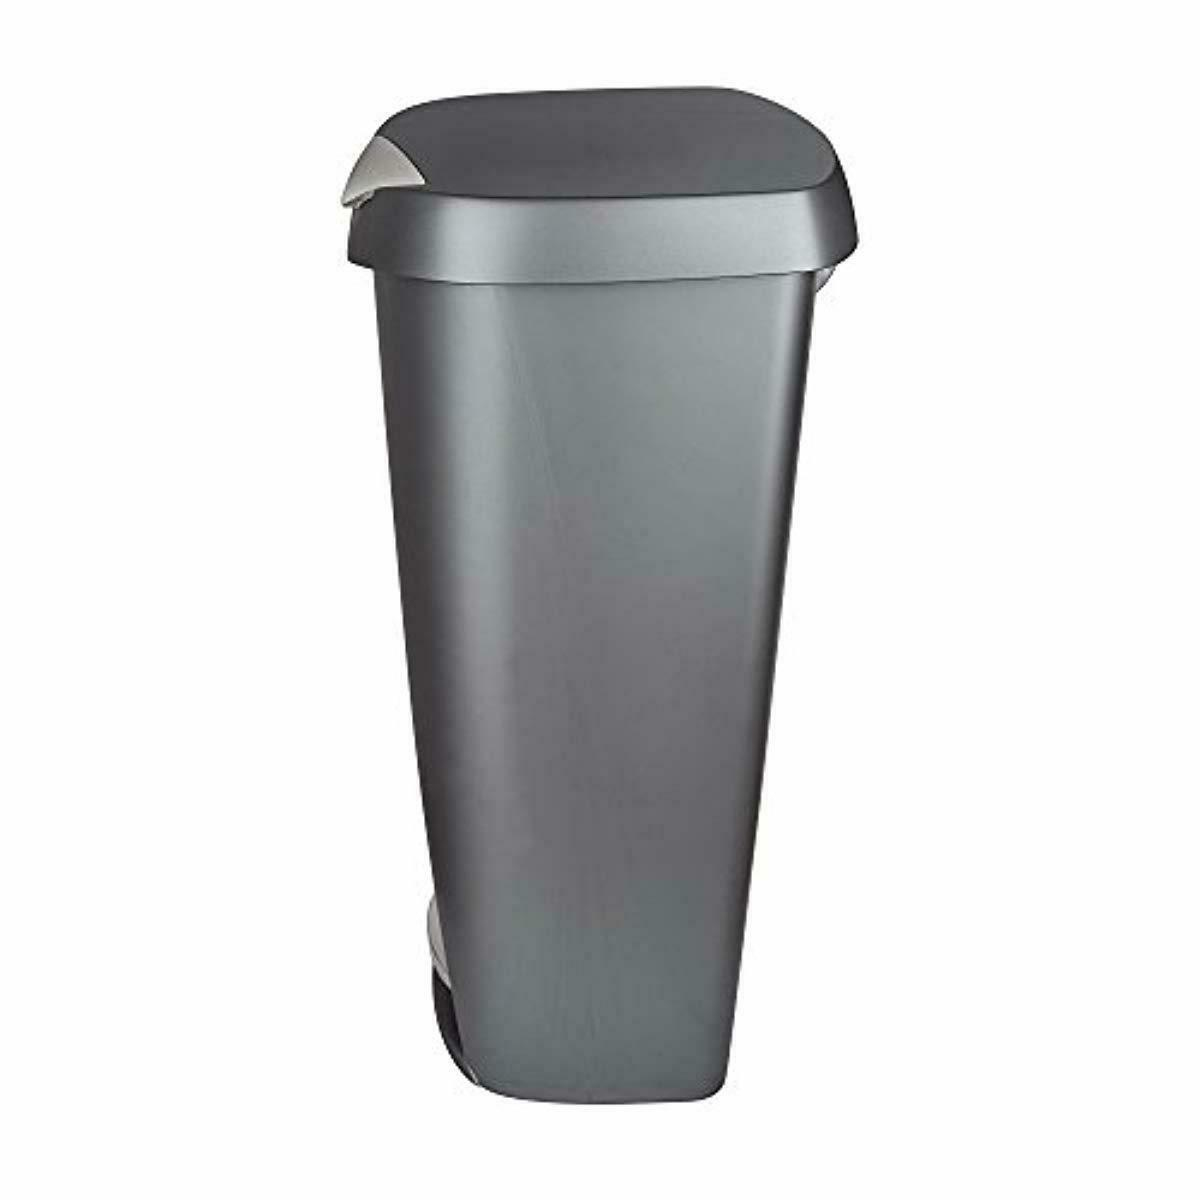 Umbra 13 Gallon Trash Can with - Can Stainle